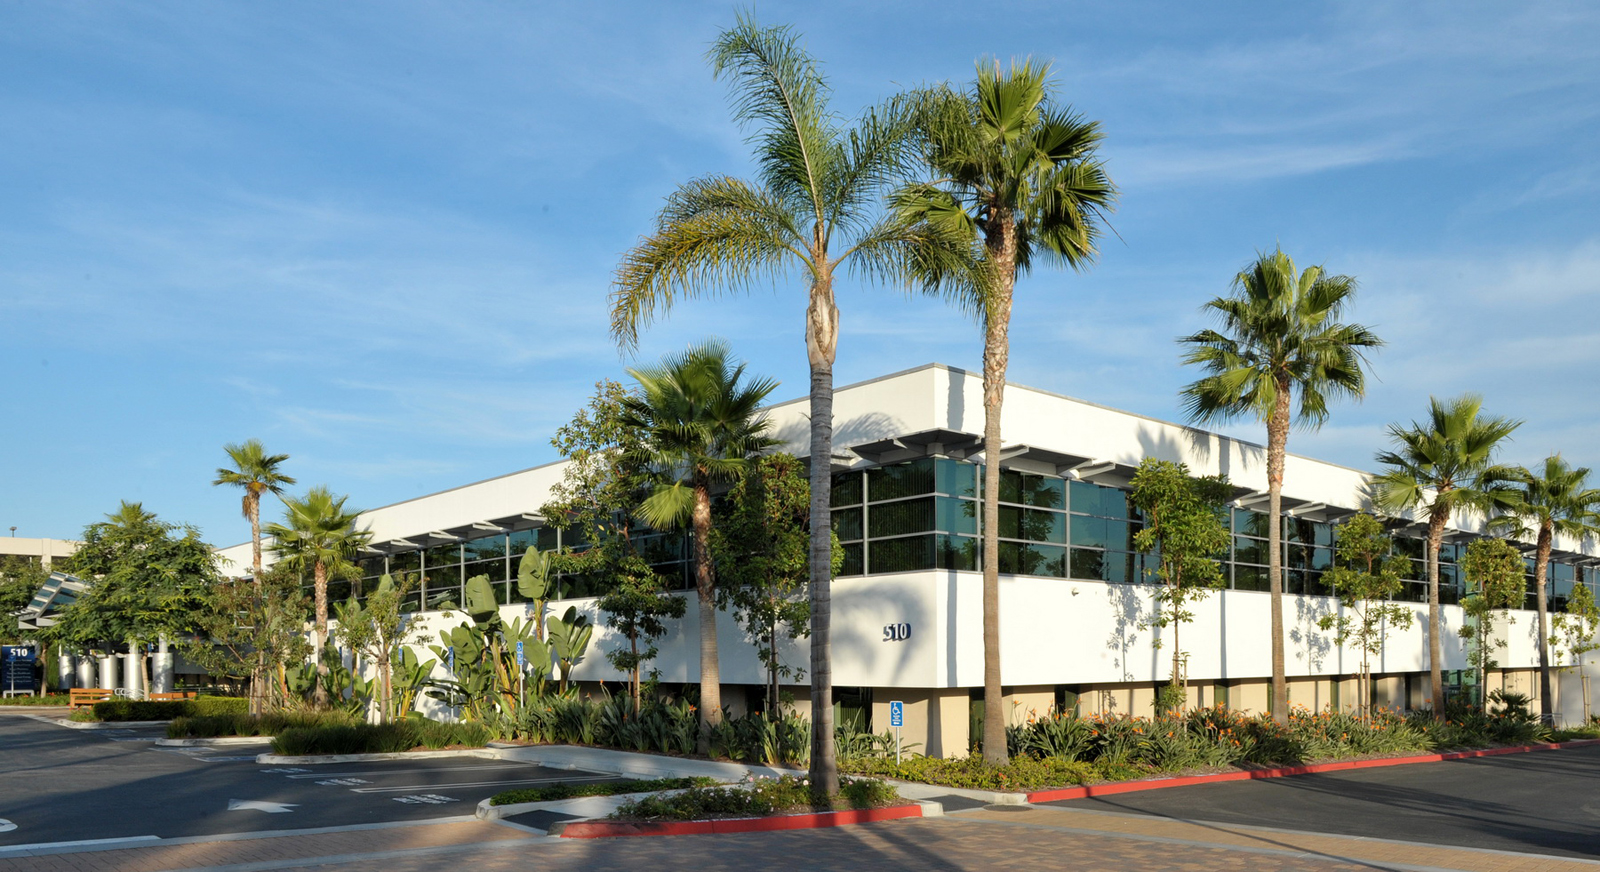 Hoag Internal Medicine Newport Beach